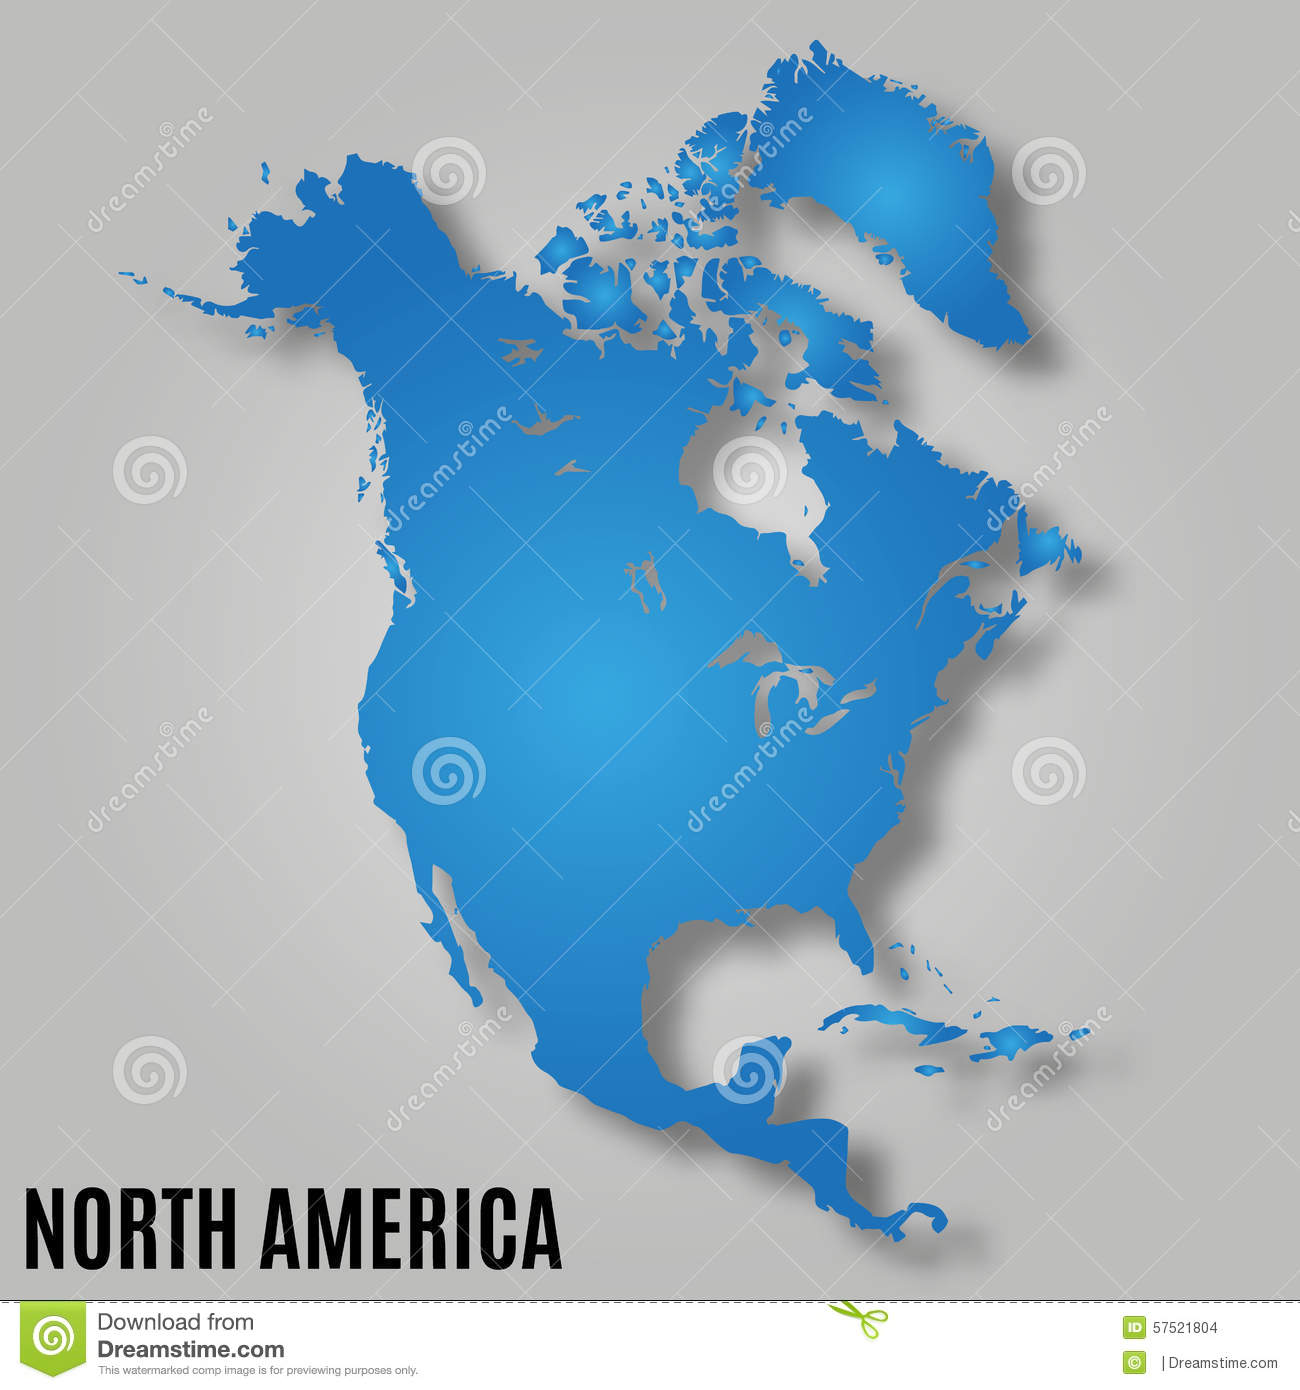 Map Of North America Stock Vector Image - Download map of north america